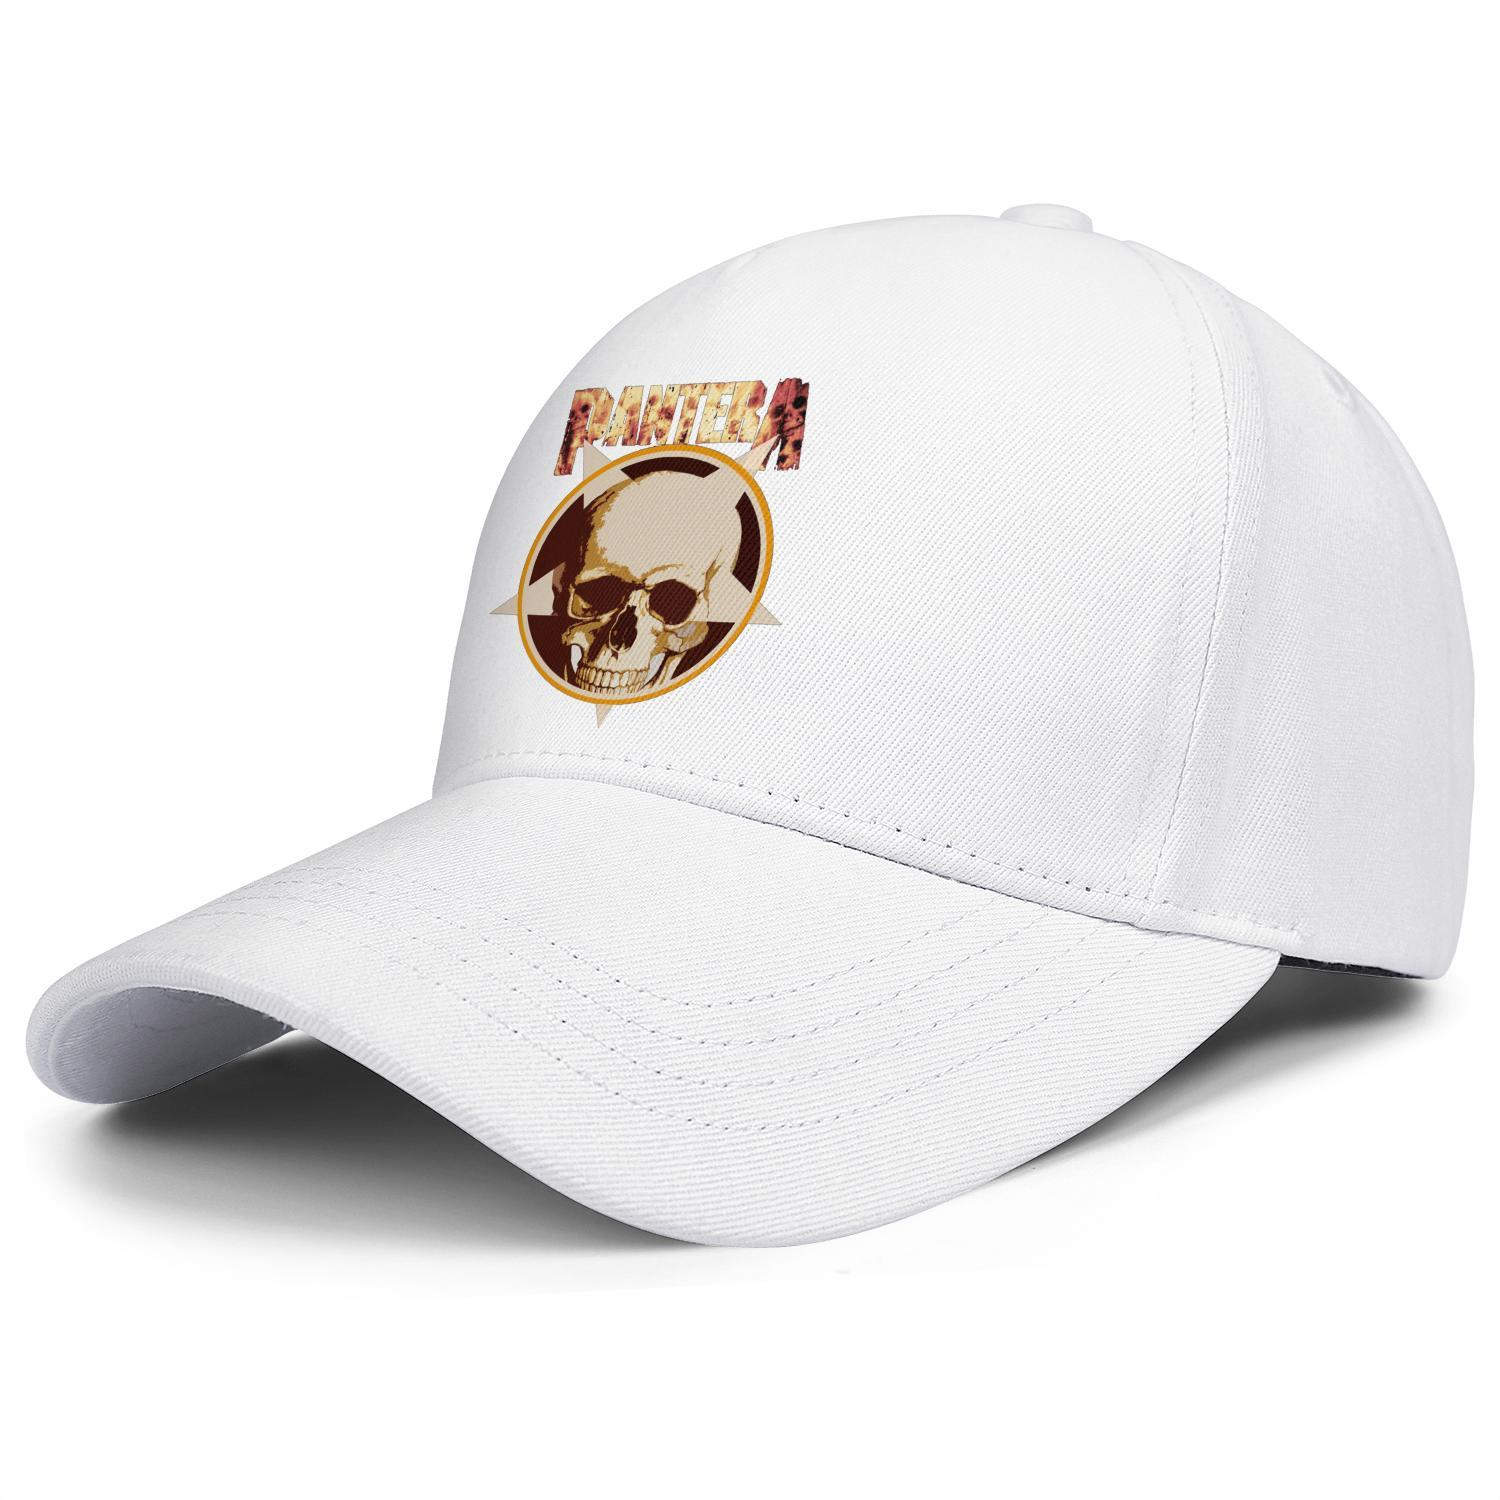 Pantera Cowboys From Hell White For Men And Women Trucker Cap Ball